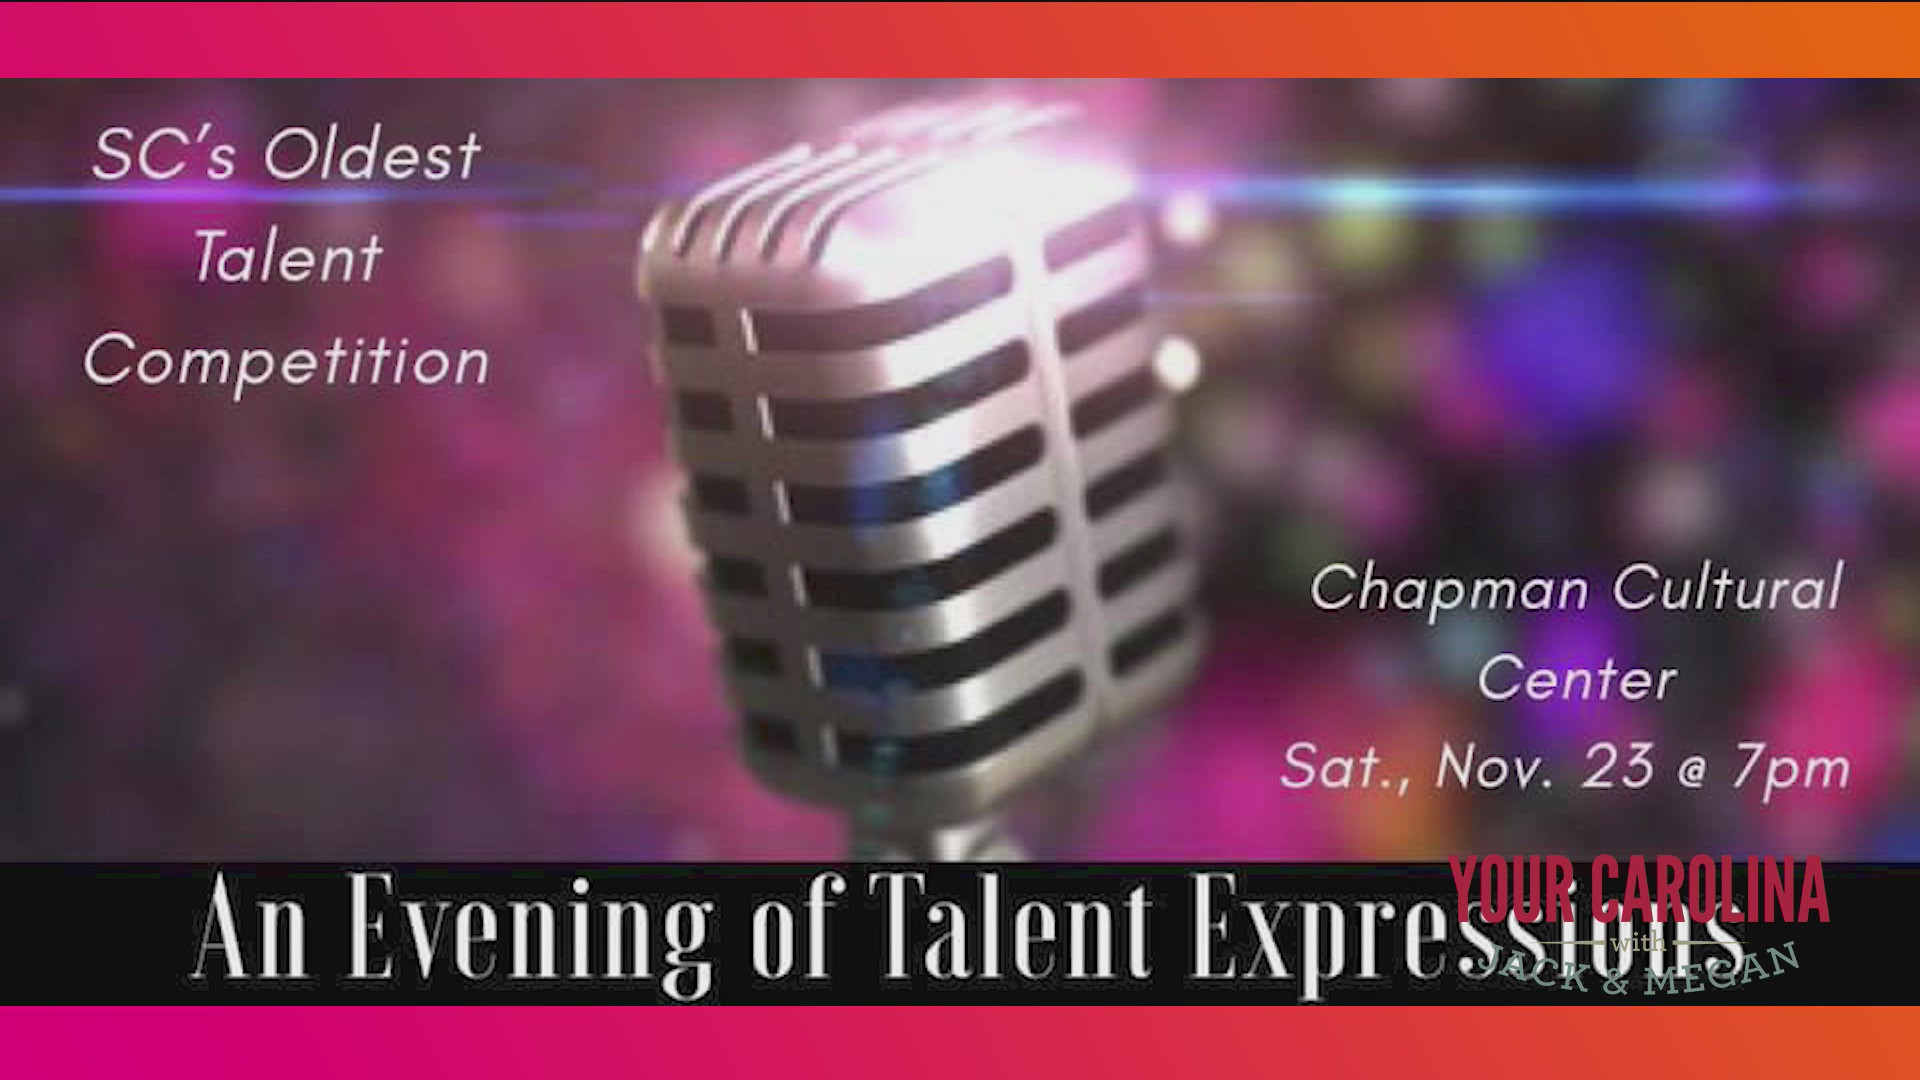 An Evening of Talent Expressions This Saturday